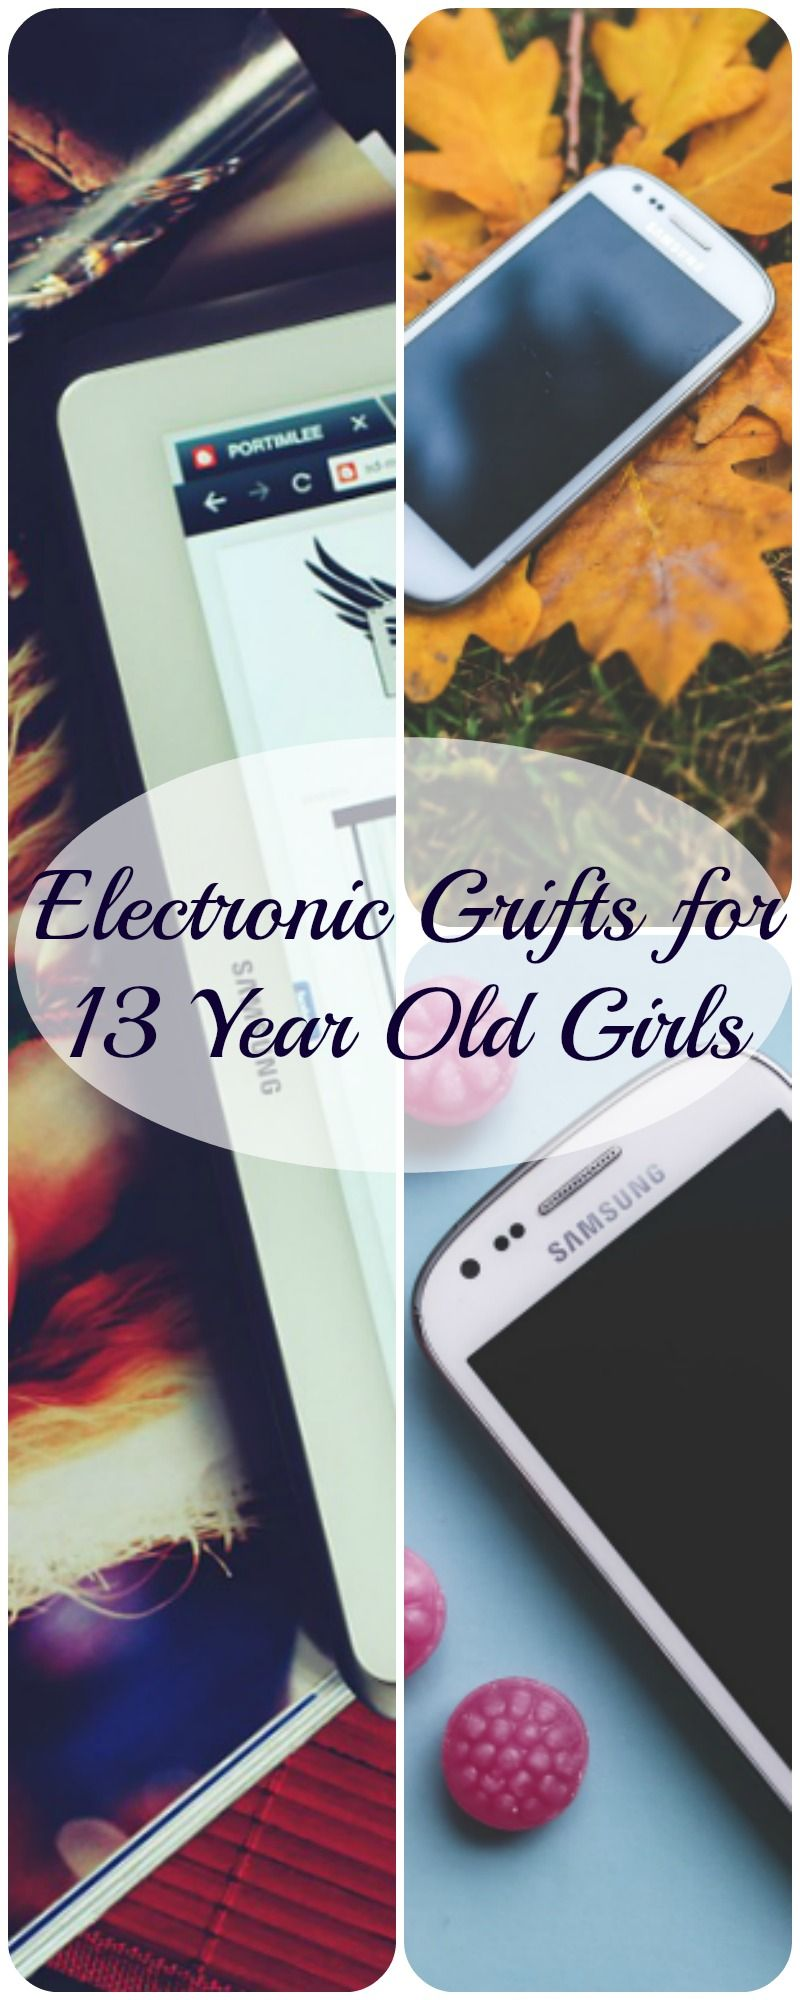 The Best Electronic Gifts For 13 Year Old Girls